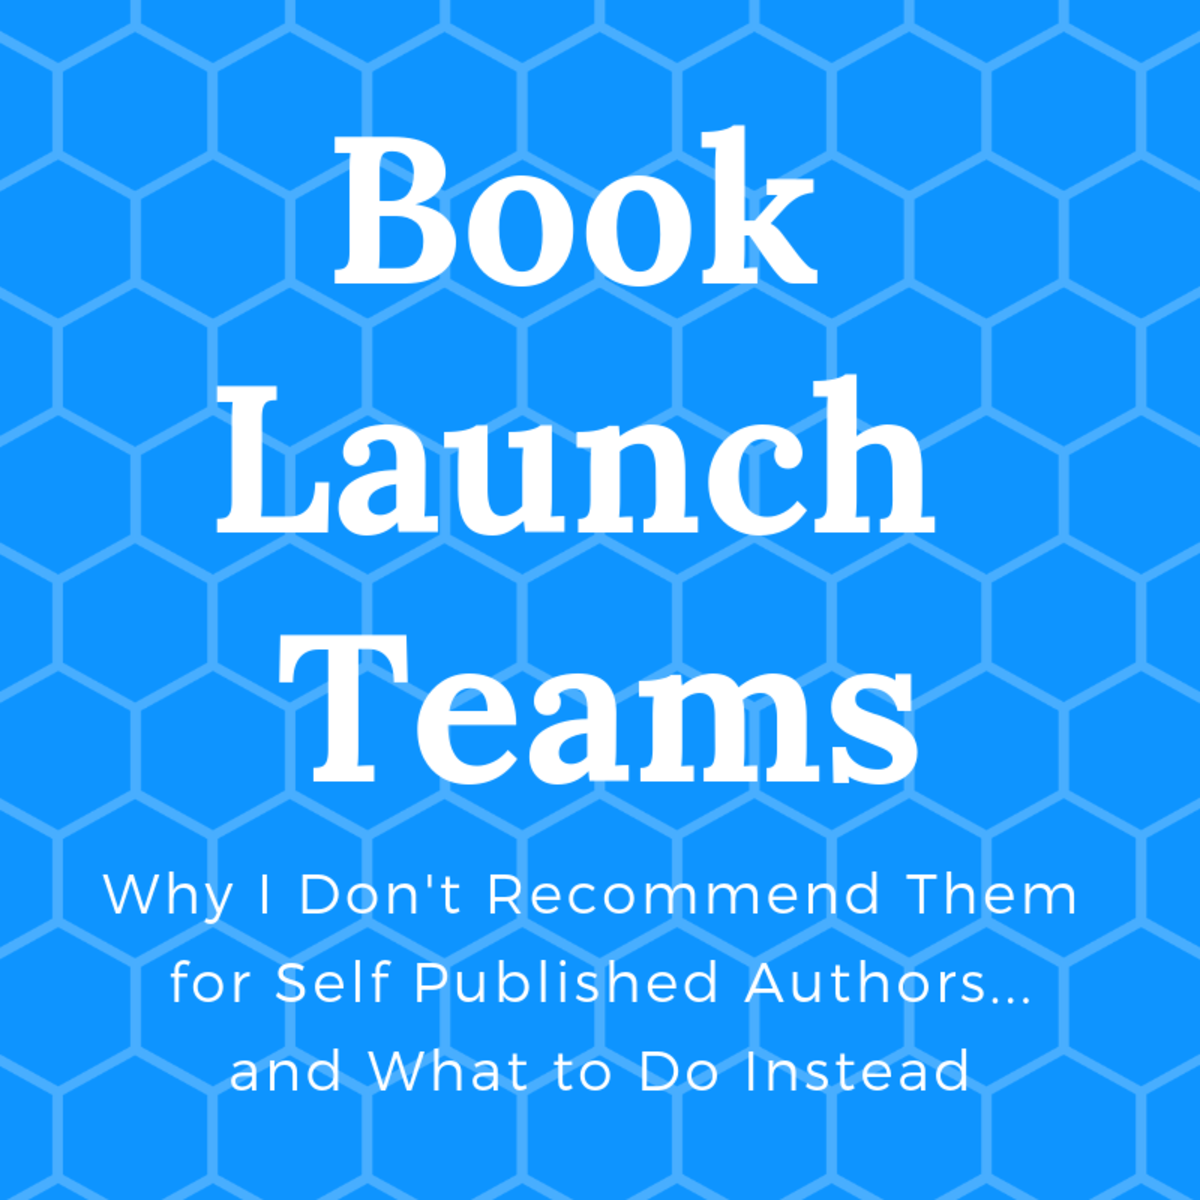 Why I Don't Recommend Book Launch Teams for Self-Publishing Authors